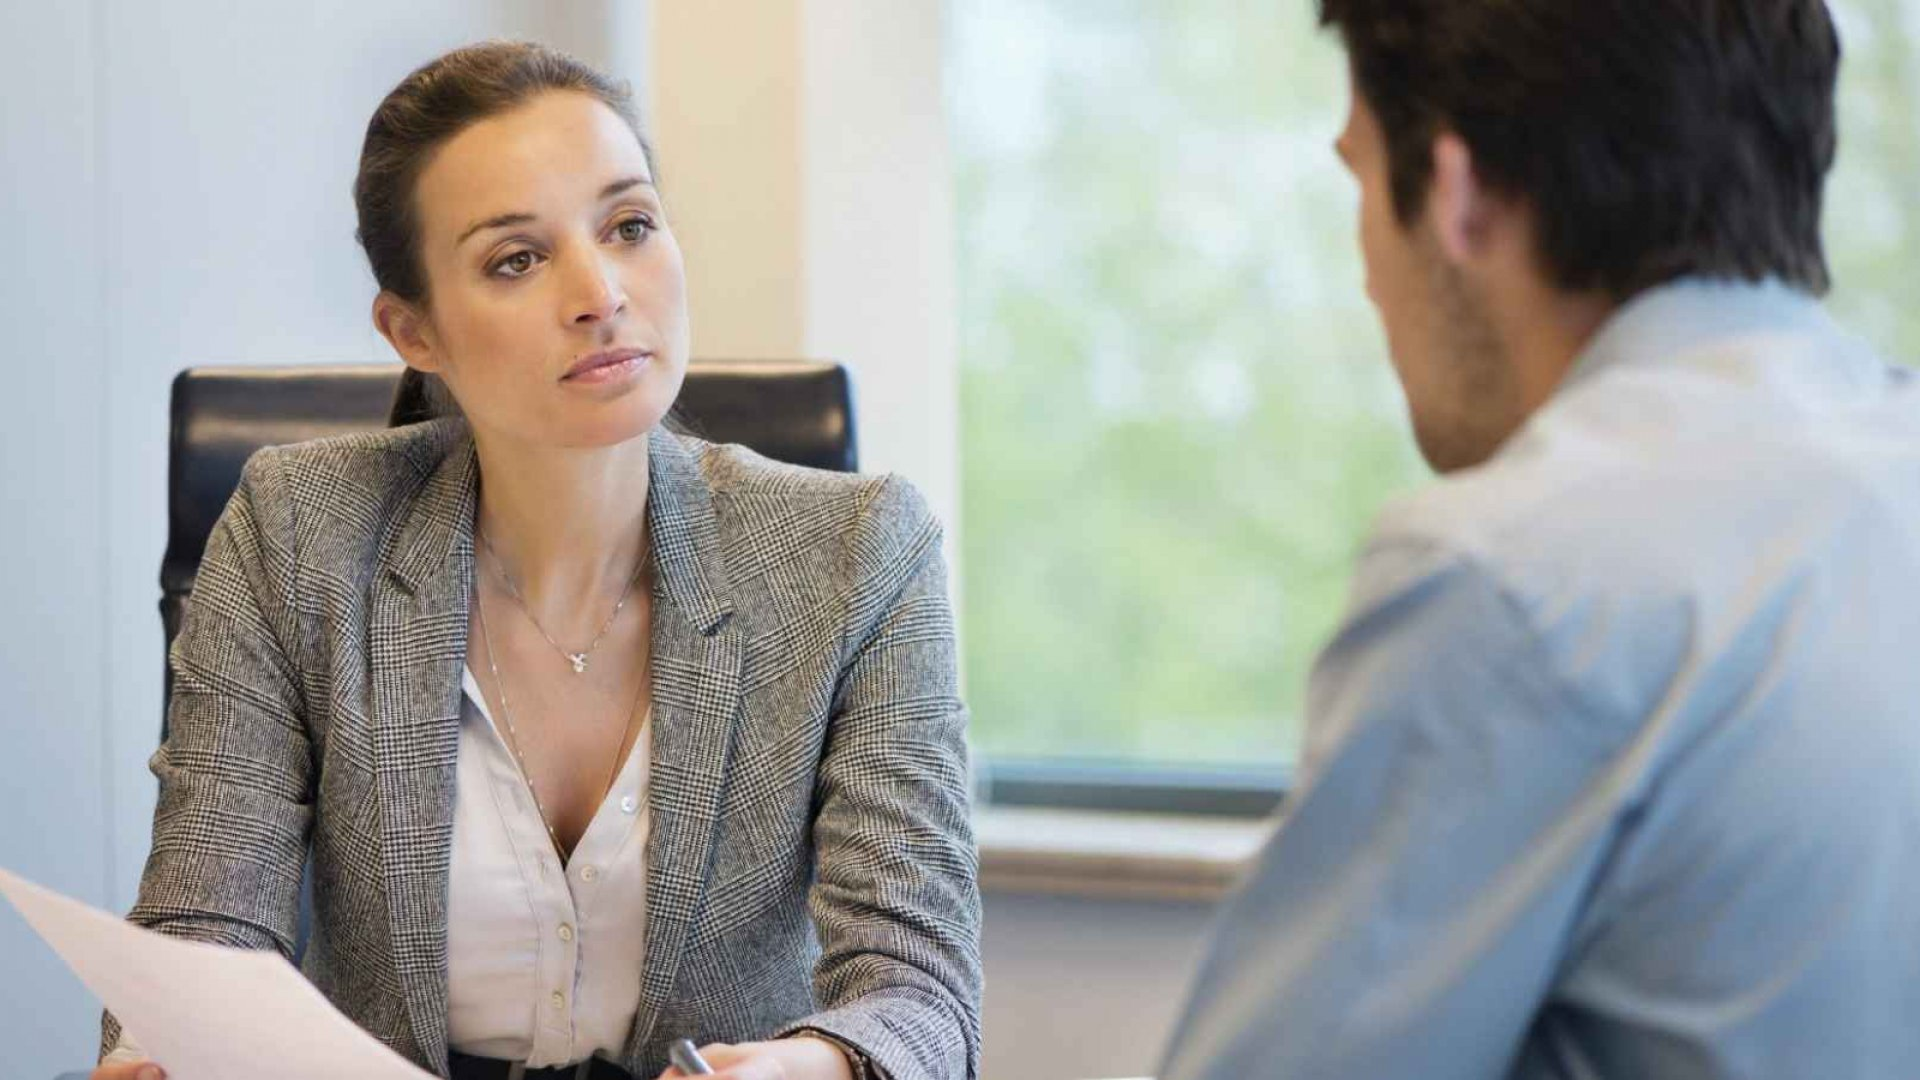 How to Catch a Liar Before You Hire Them